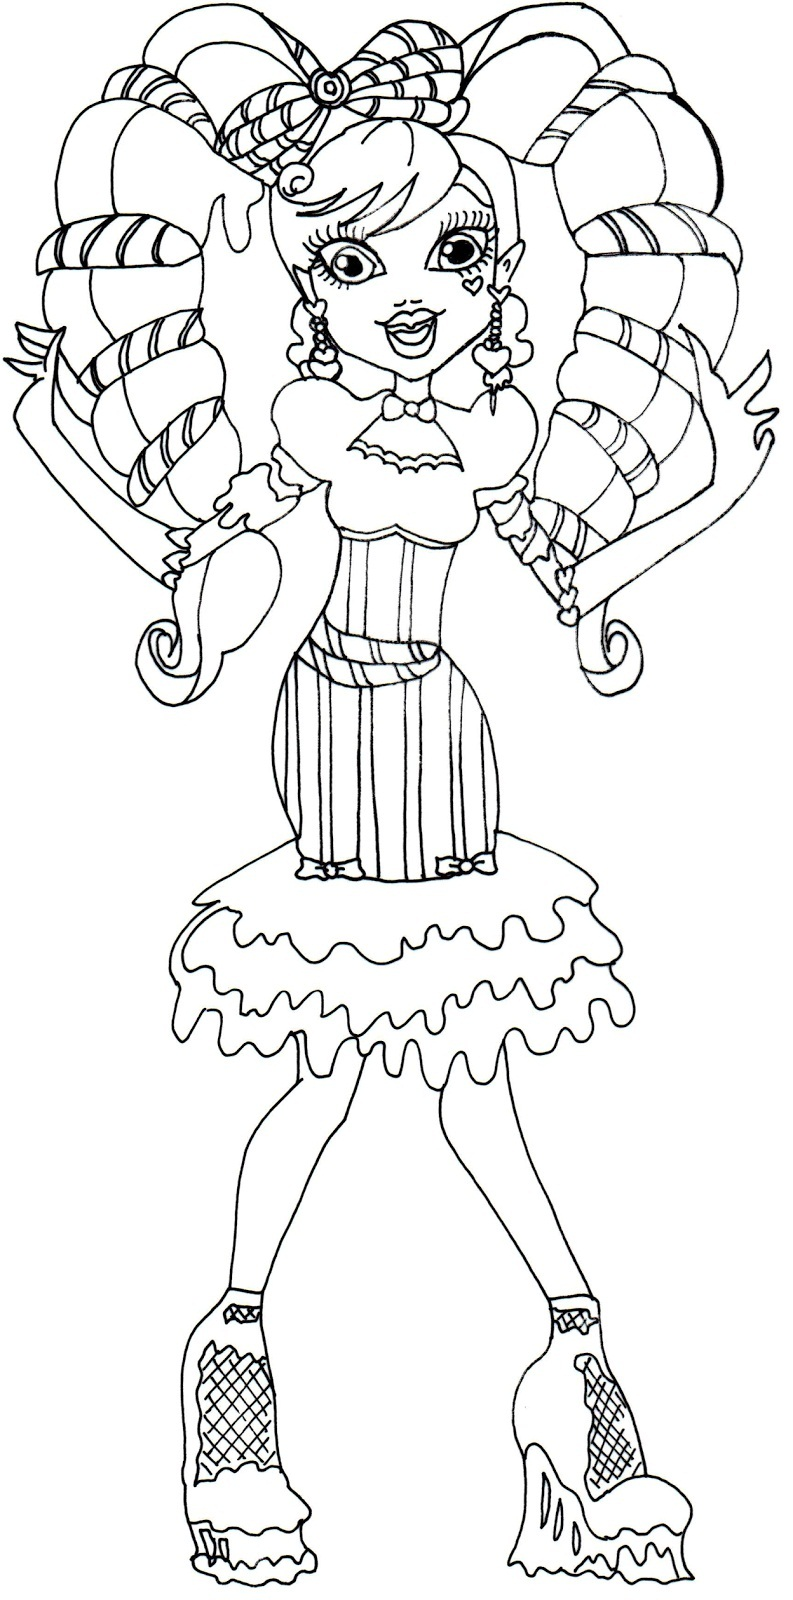 Printable Monster High Coloring Pages Coloring Me Print High Coloring Pages